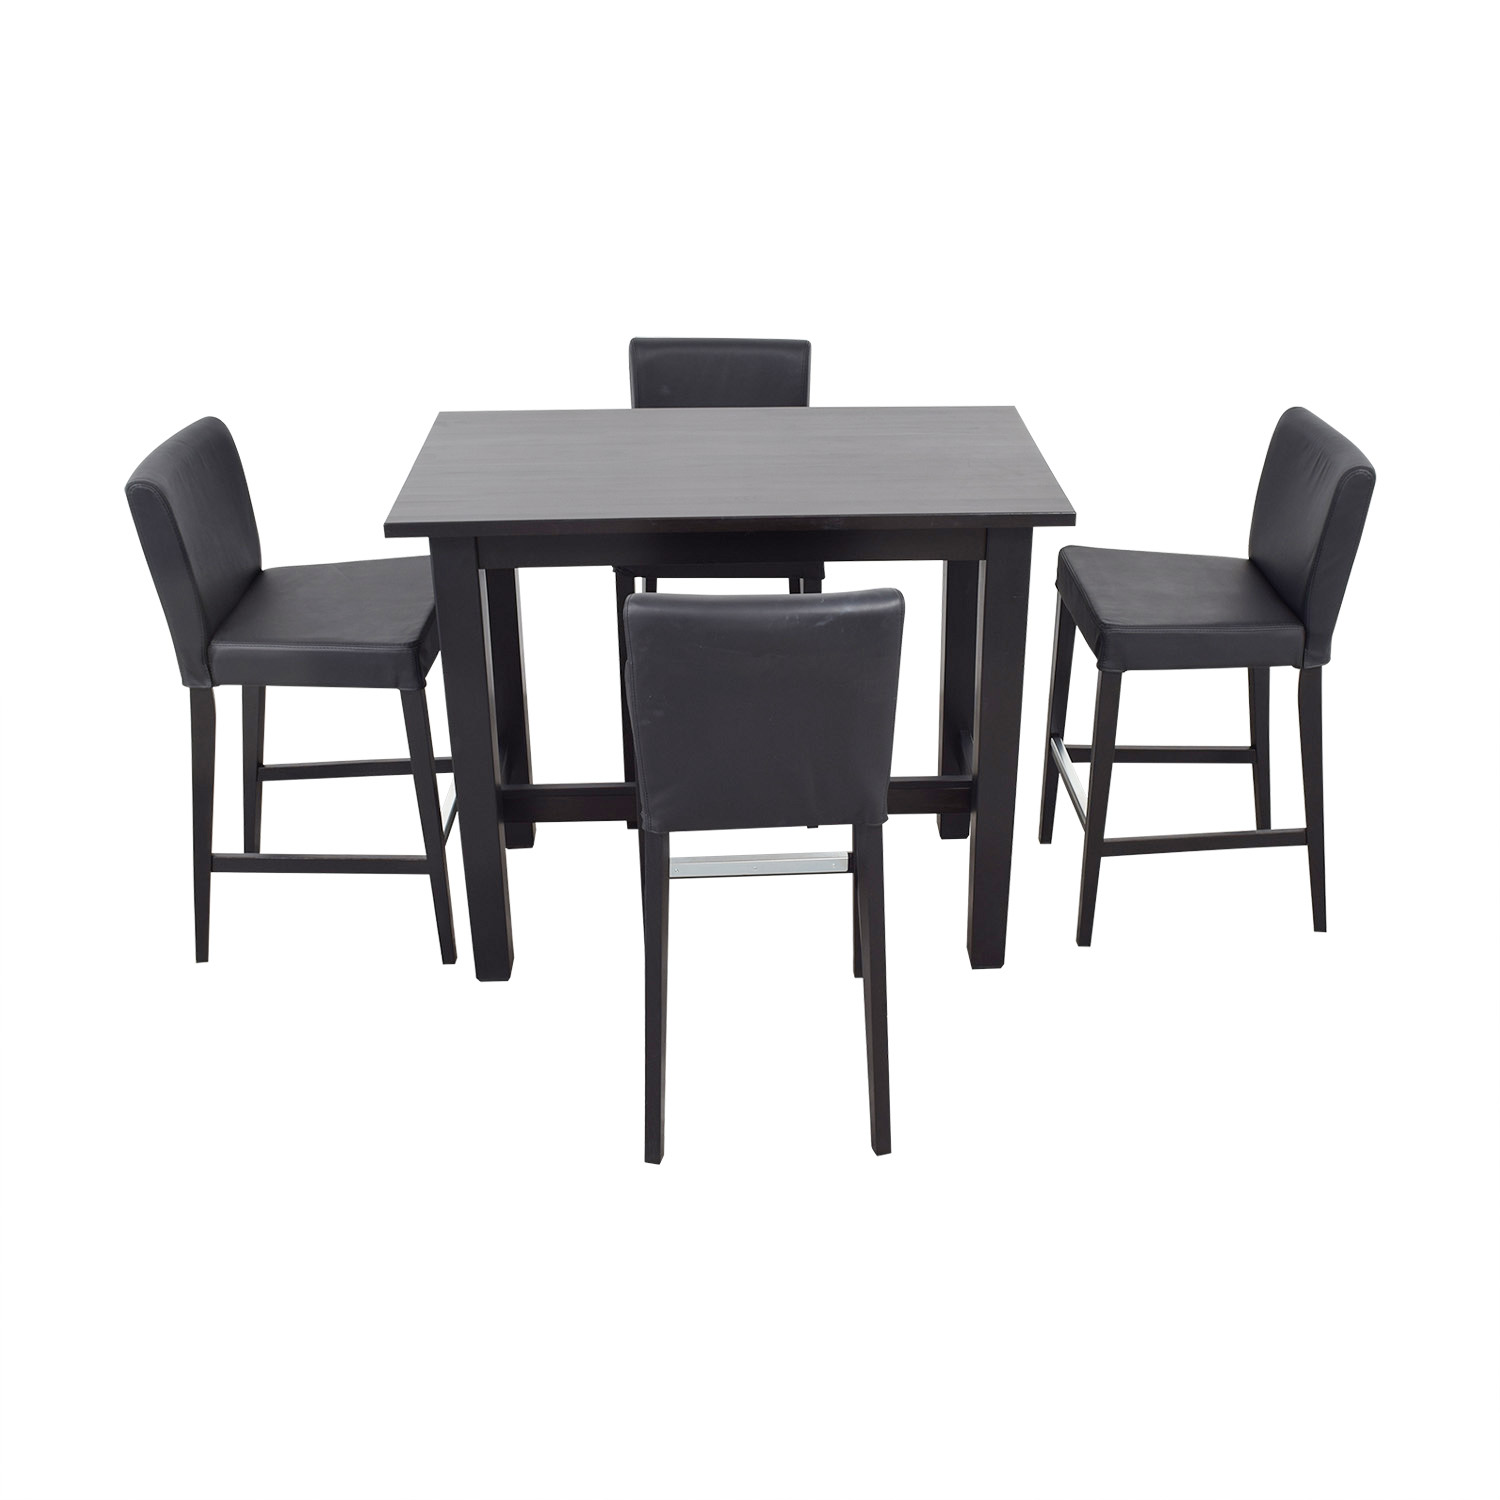 80 off ikea ikea bar height table and stools tables for Ikea dining sets usa